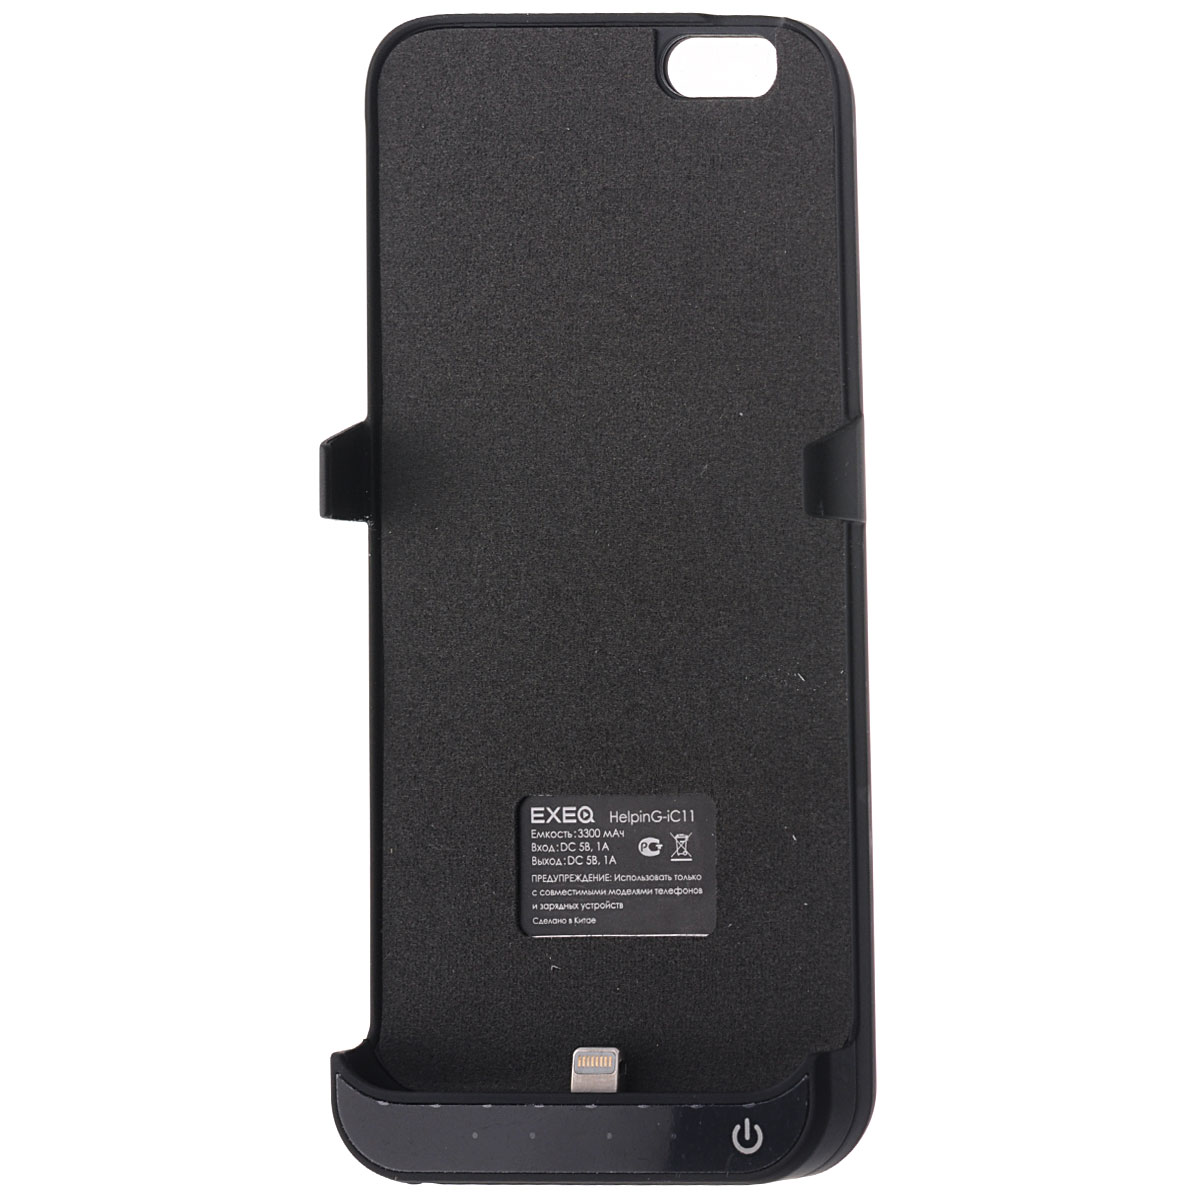 EXEQ HelpinG-iC11 чехол-аккумулятор для iPhone 6, Black (3300 мАч, клип-кейс)HelpinG-iC11 BL